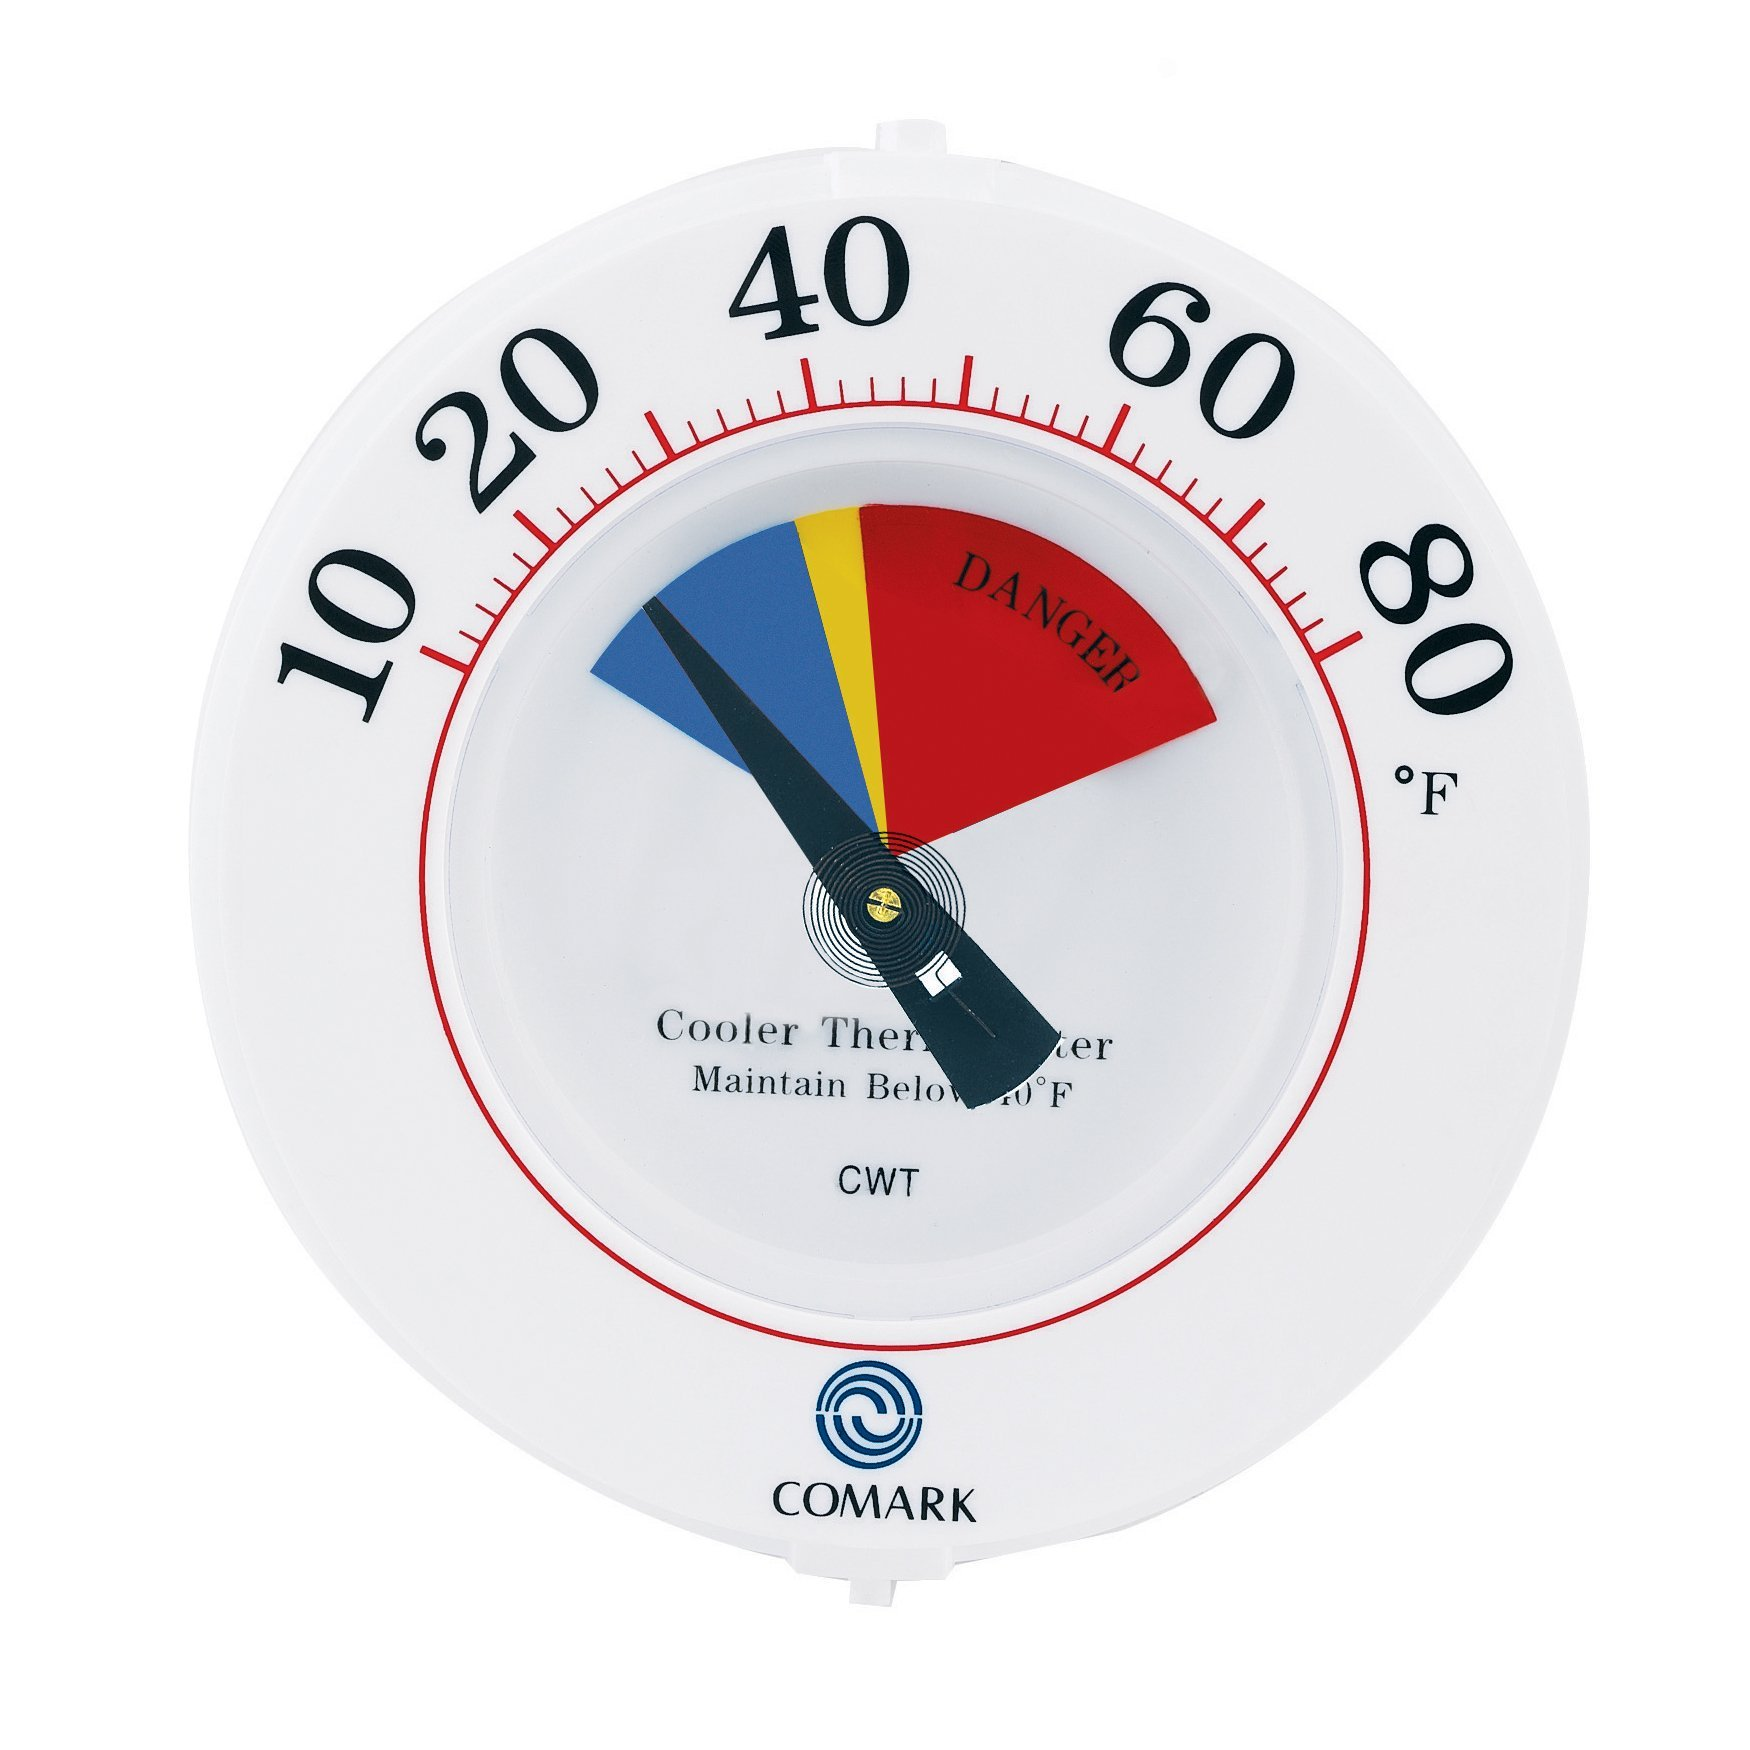 COMARK CWT Cooler Wall Thermometer with HACCP-Series Zones, 10 to 80F